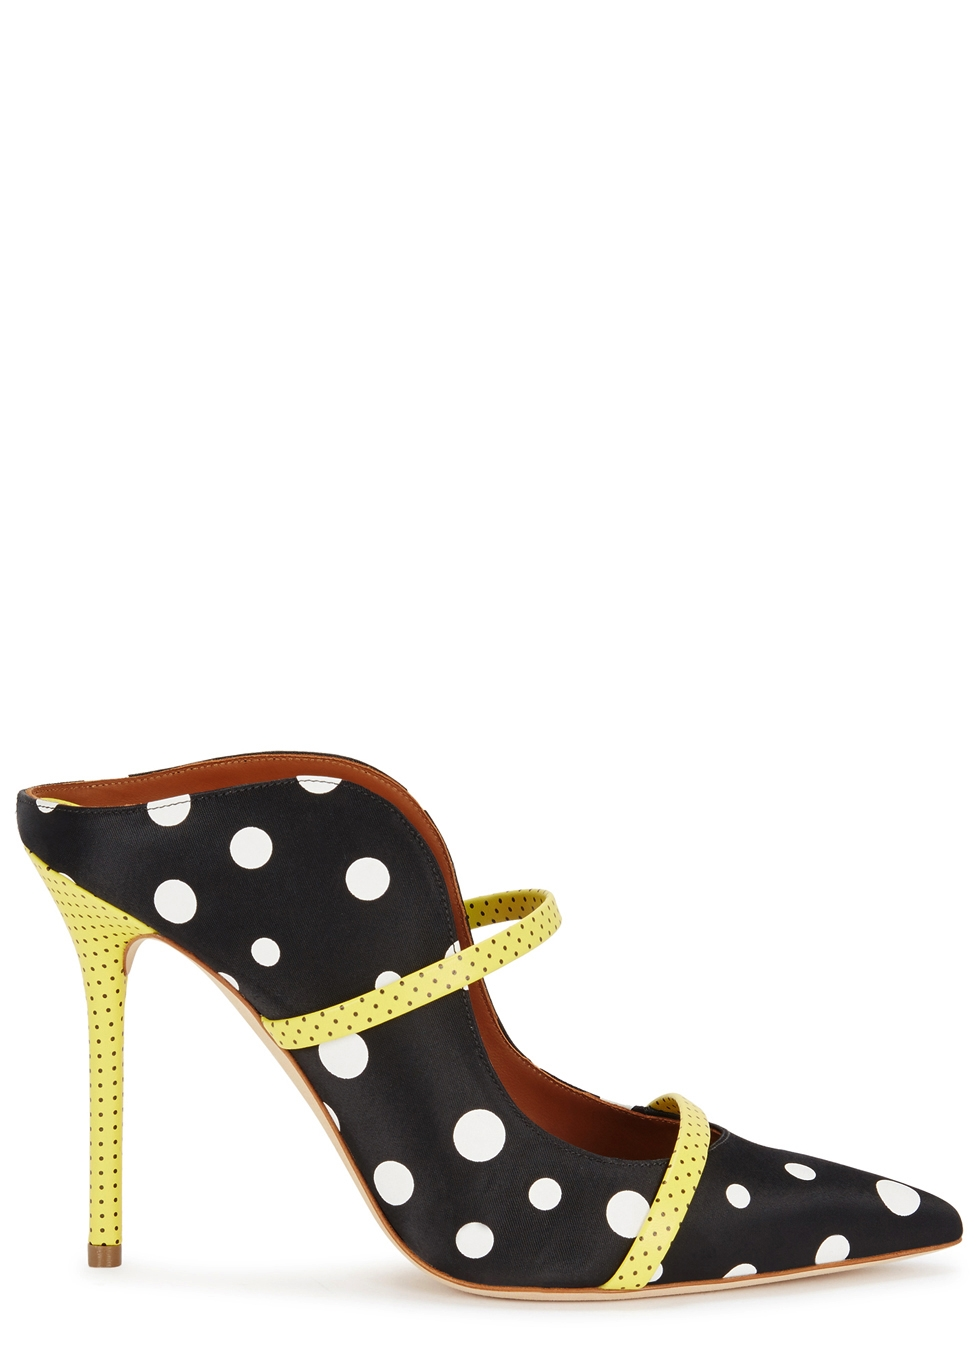 Malone Souliers X Emanuel Ungaro Maureen 100 mules clearance 2014 newest cheap sale shop offer outlet latest collections PY5RPANR